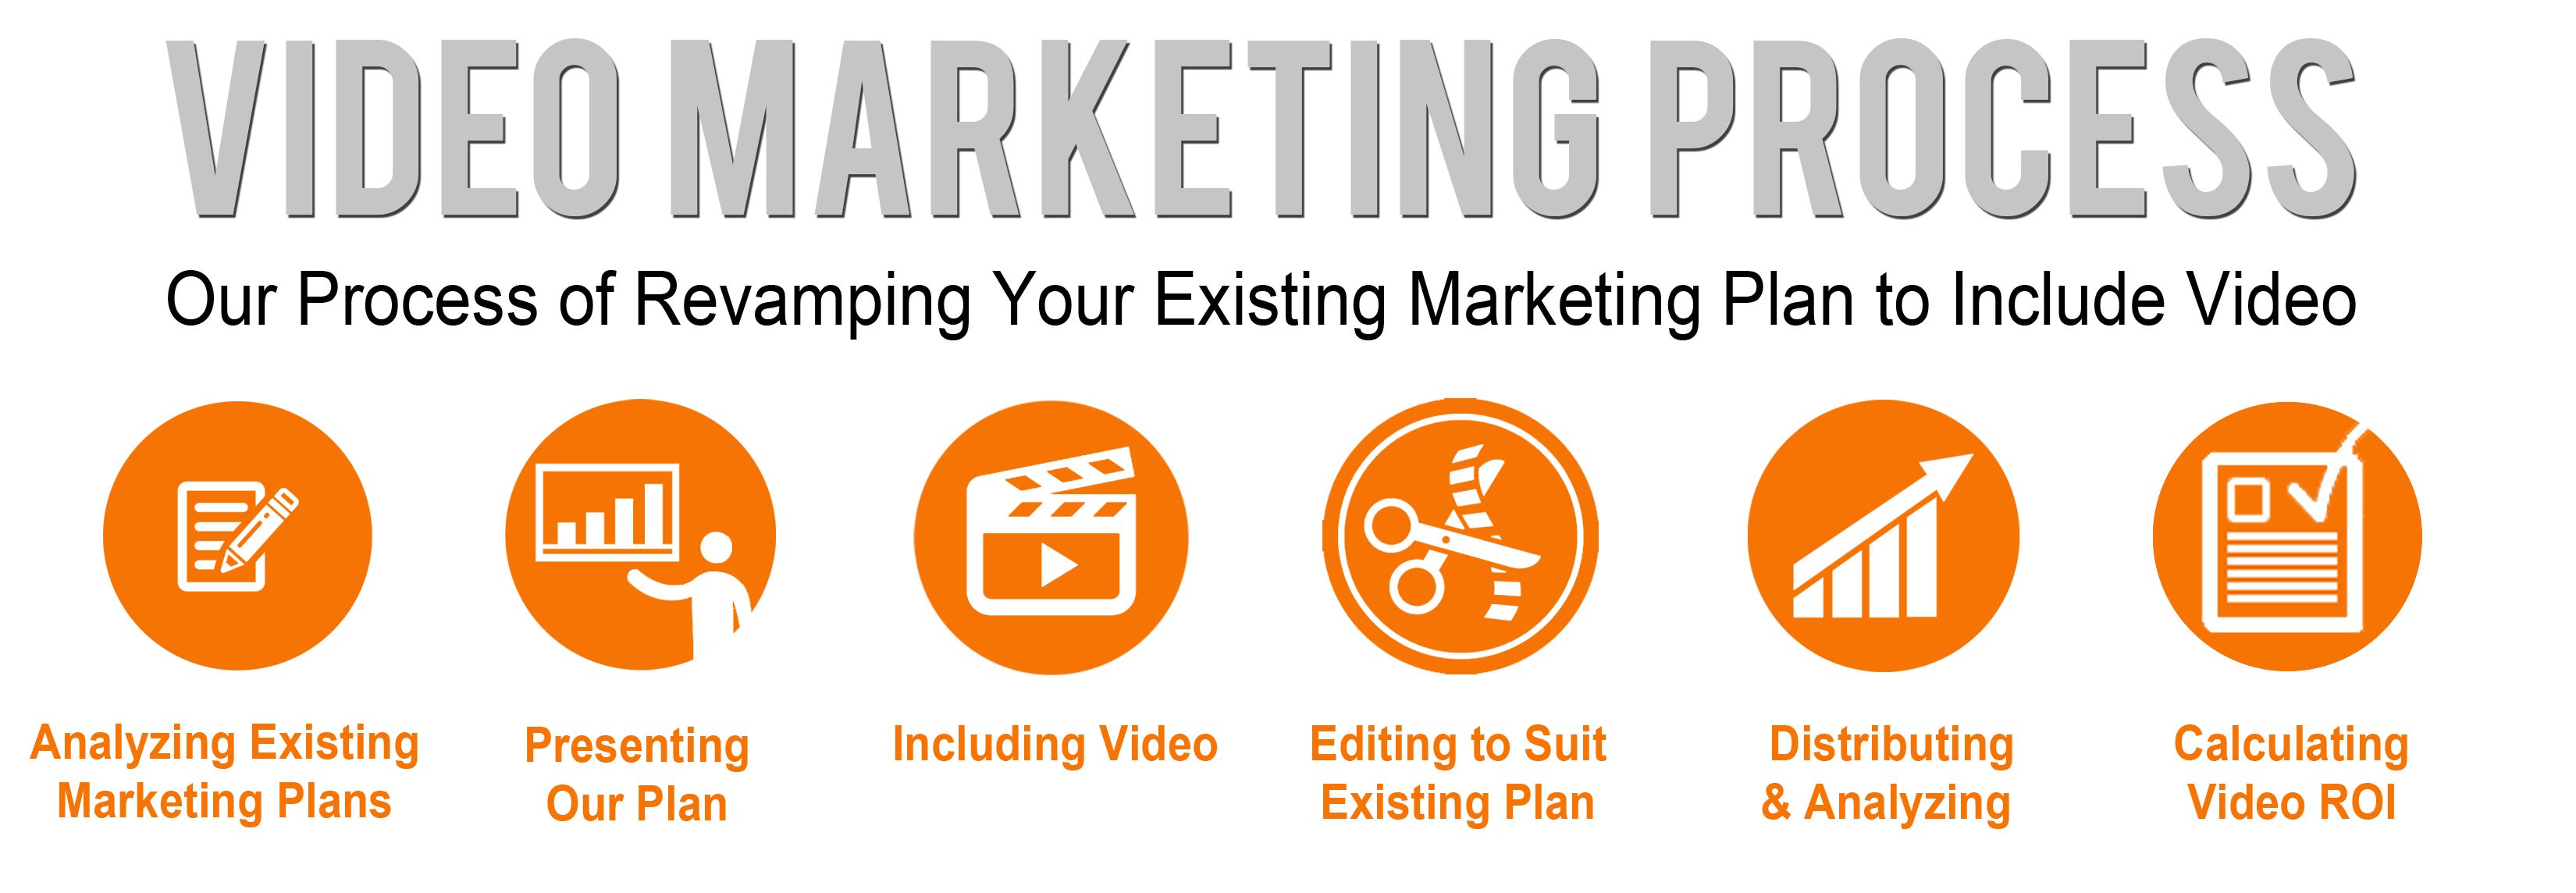 6-step-video marketing process 2017 video marketing sri lanka 2017